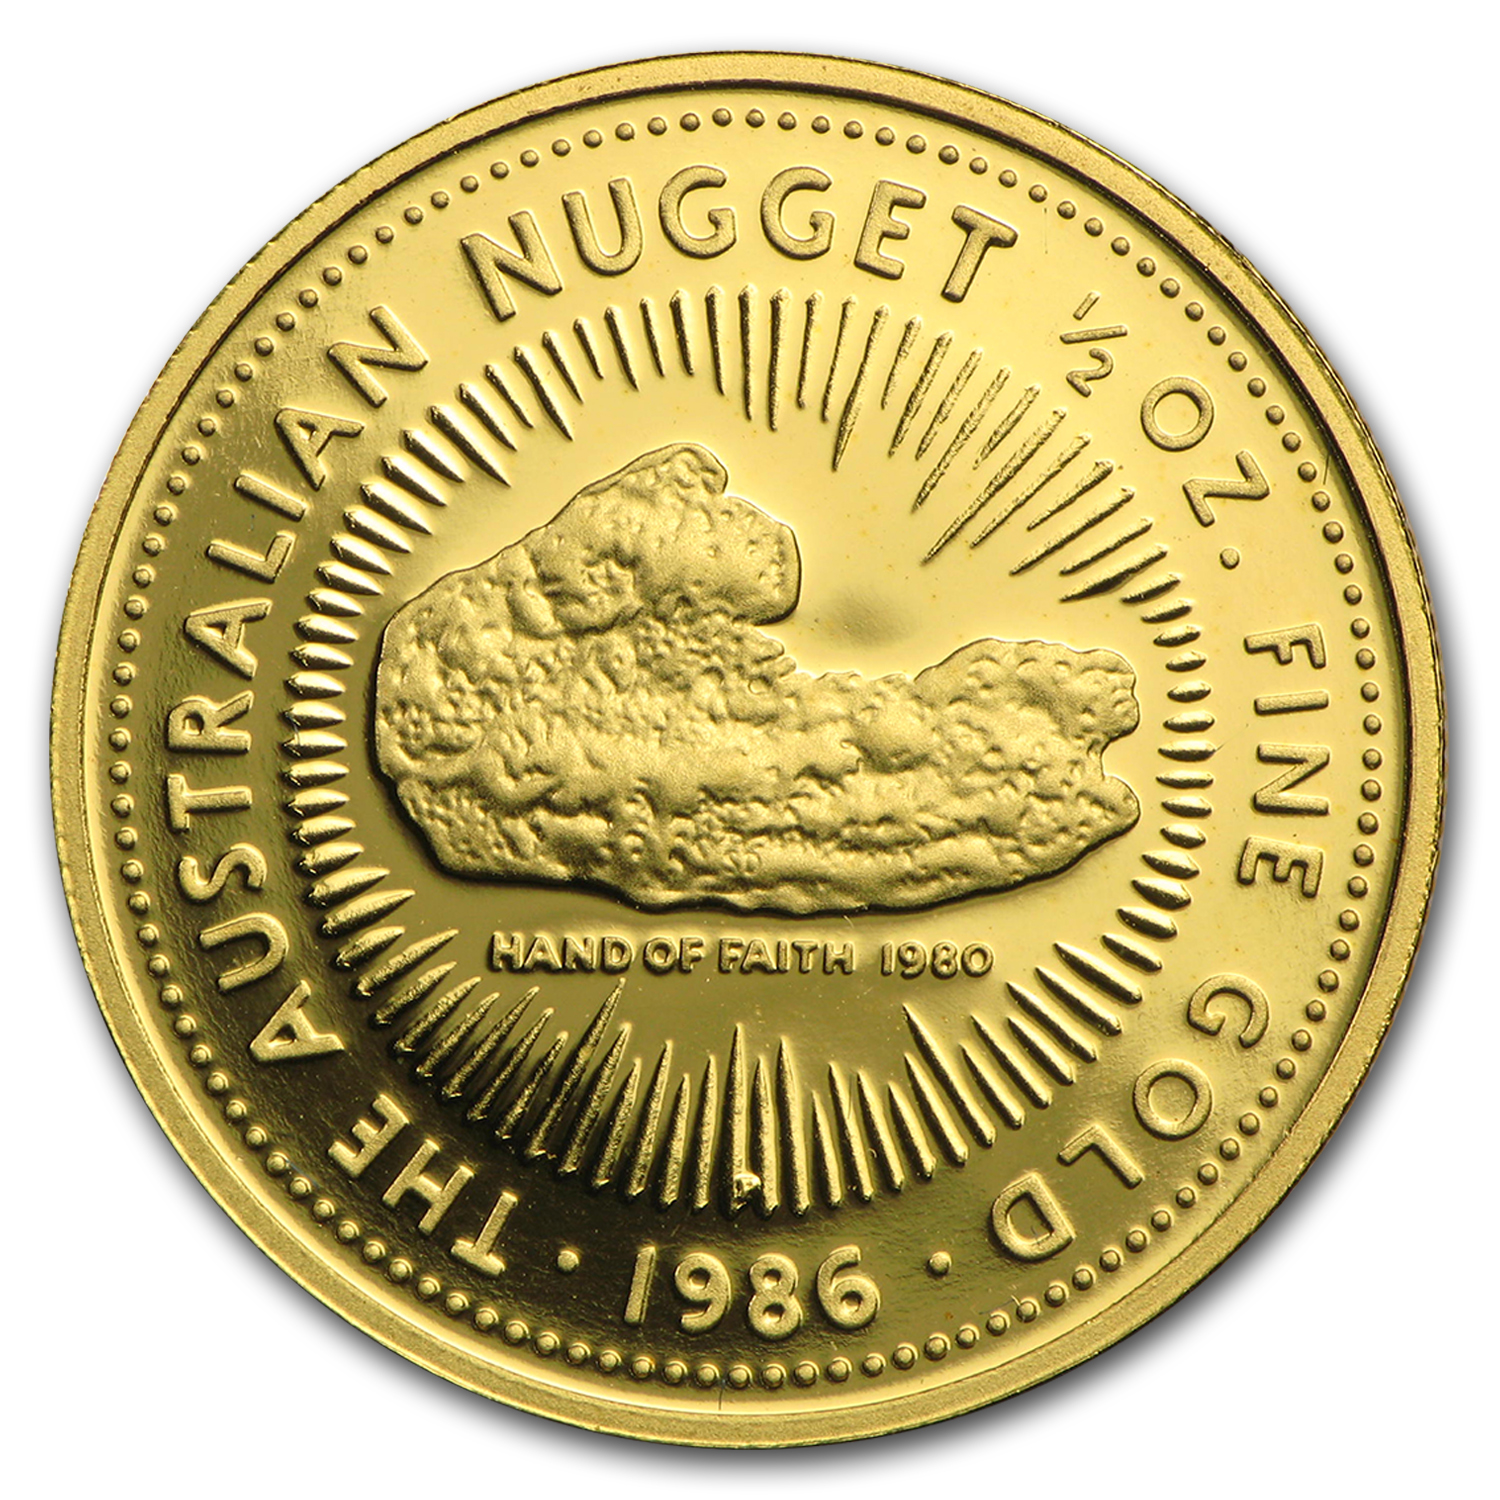 1986 Australia 1/2 oz Proof Gold Nugget